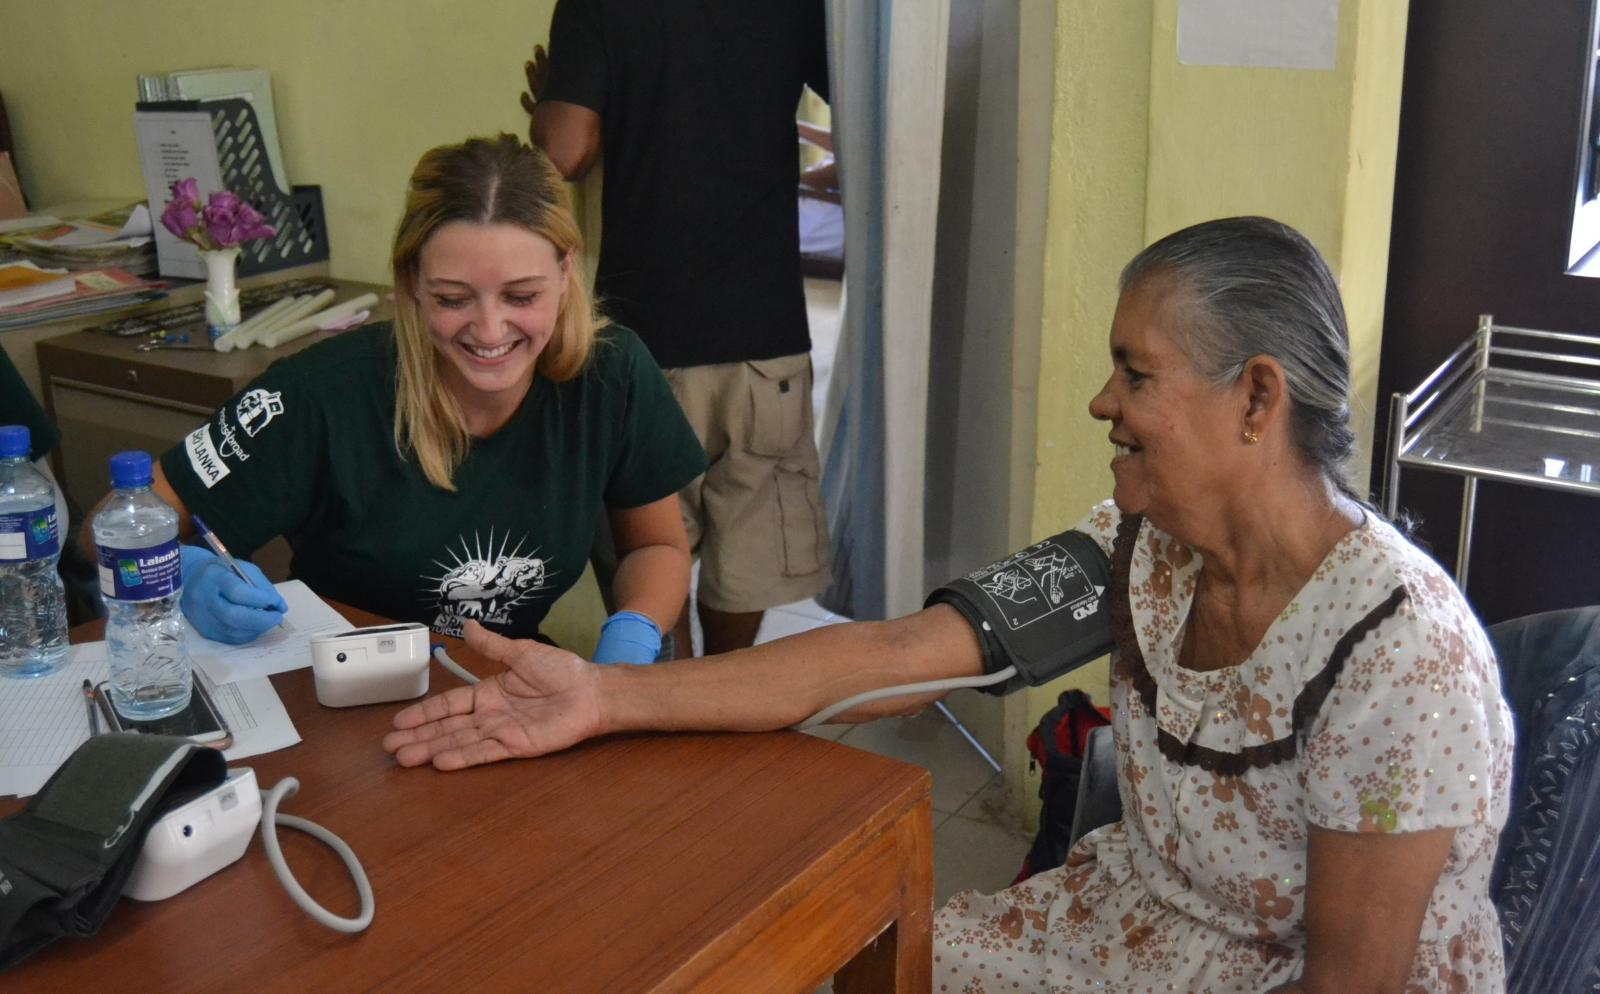 A volunteer on an alternative project to Doctors without Borders takes a patient's blood pressure reading